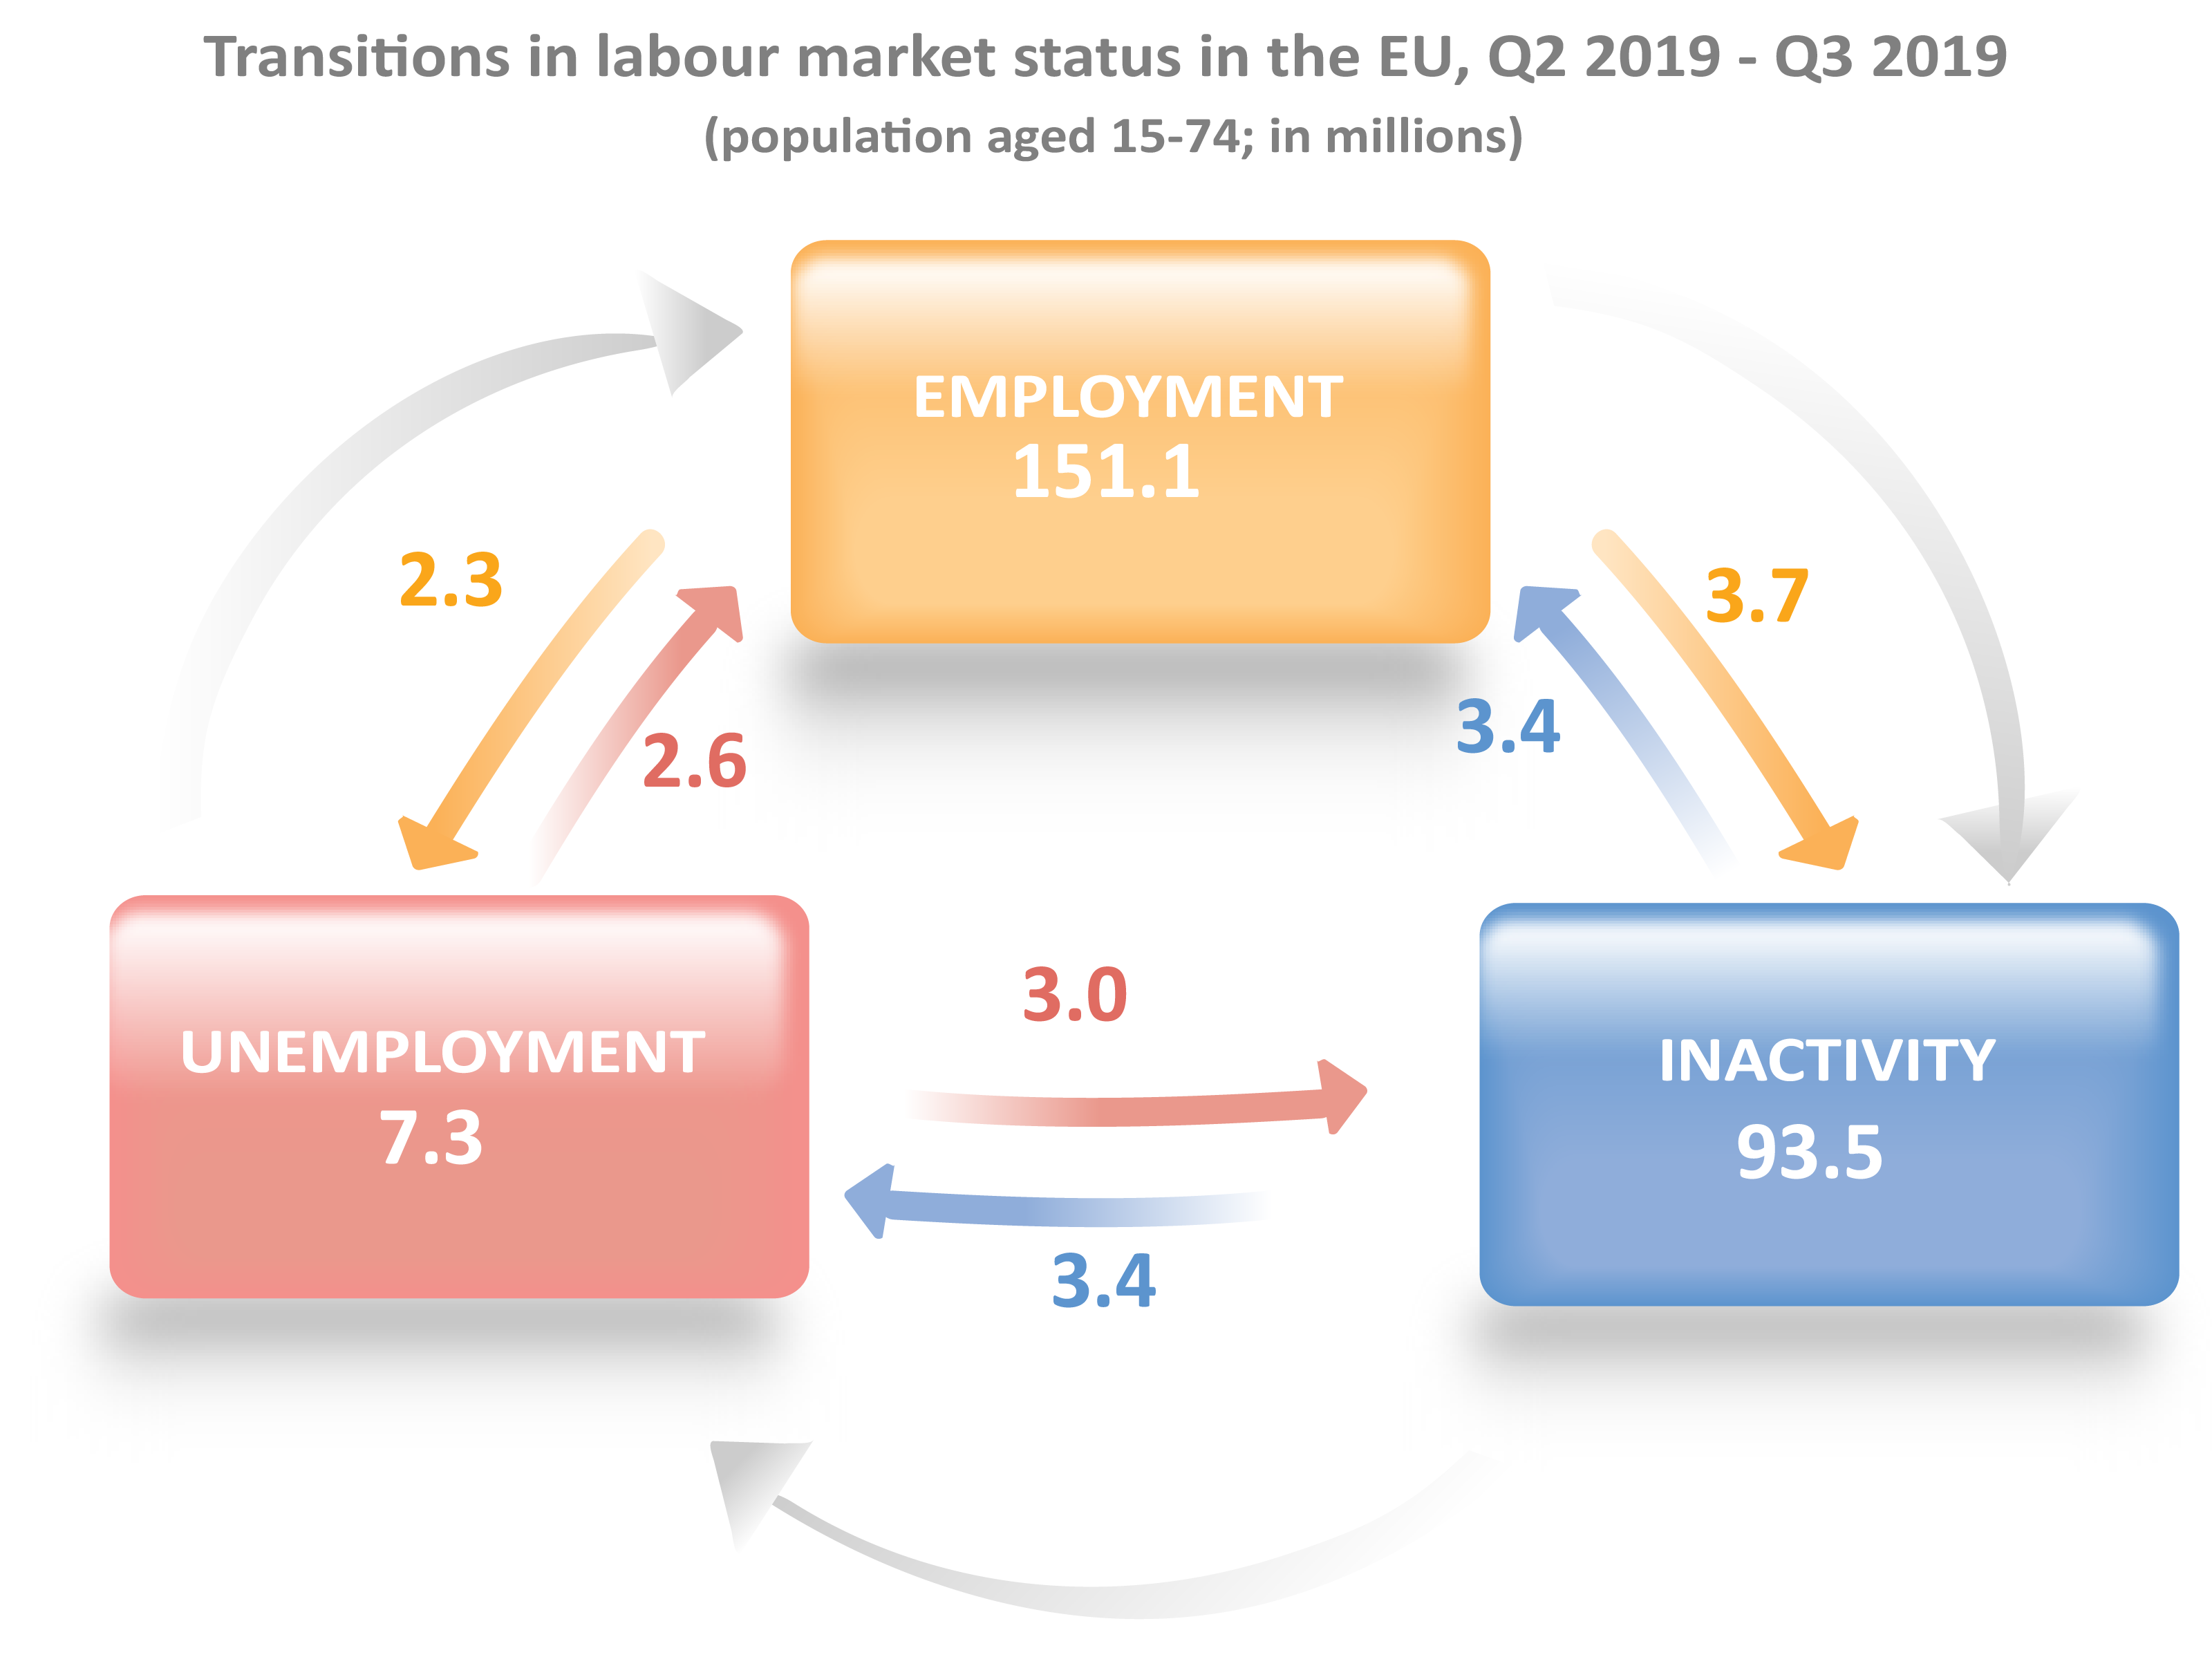 Transitions in labour market status in the EU, Q2 2019 - Q3 2019